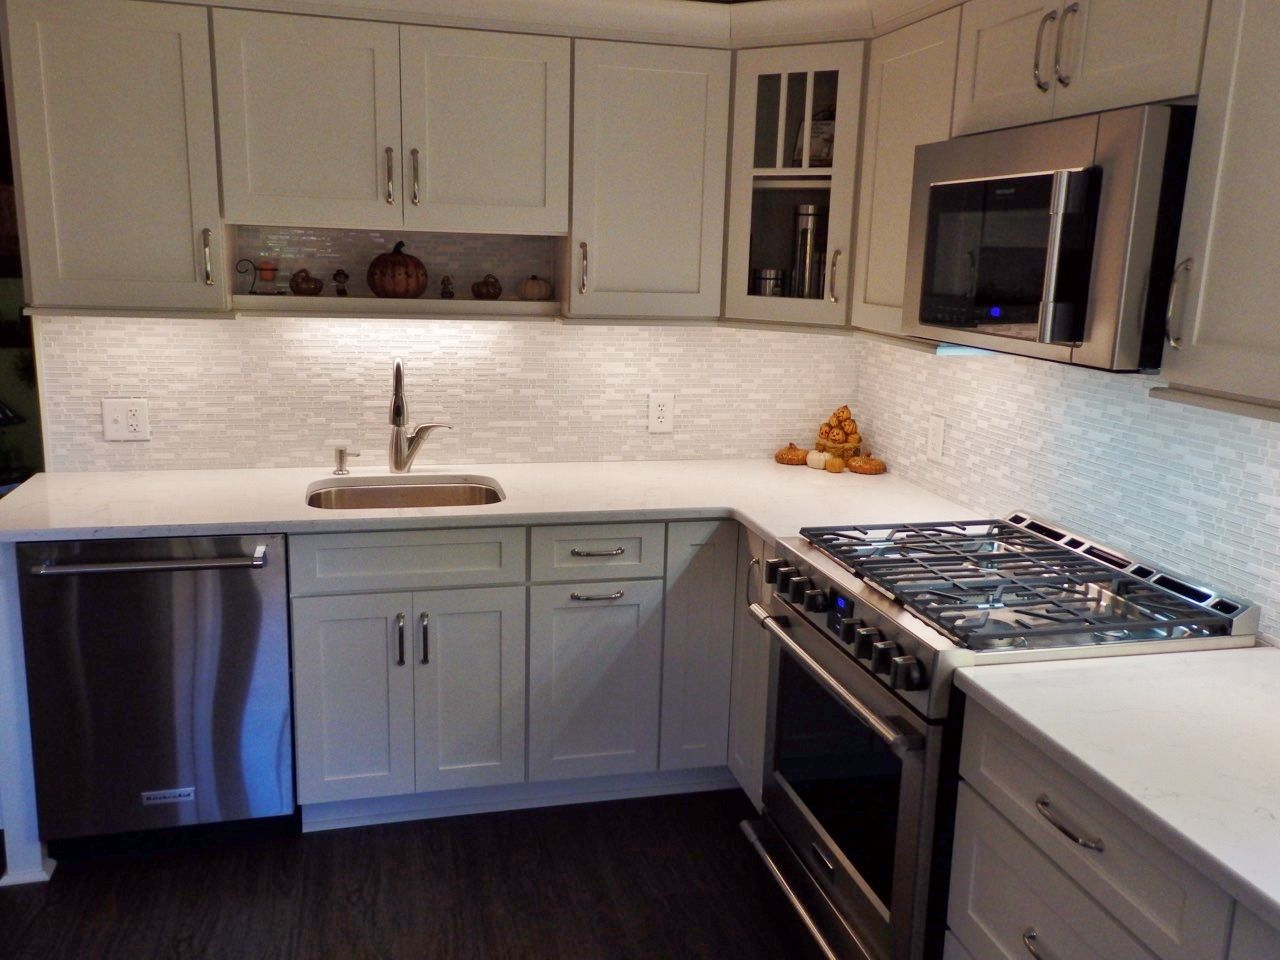 Pental quartz misterio engineered quartz countertops with for Engineered quartz countertops